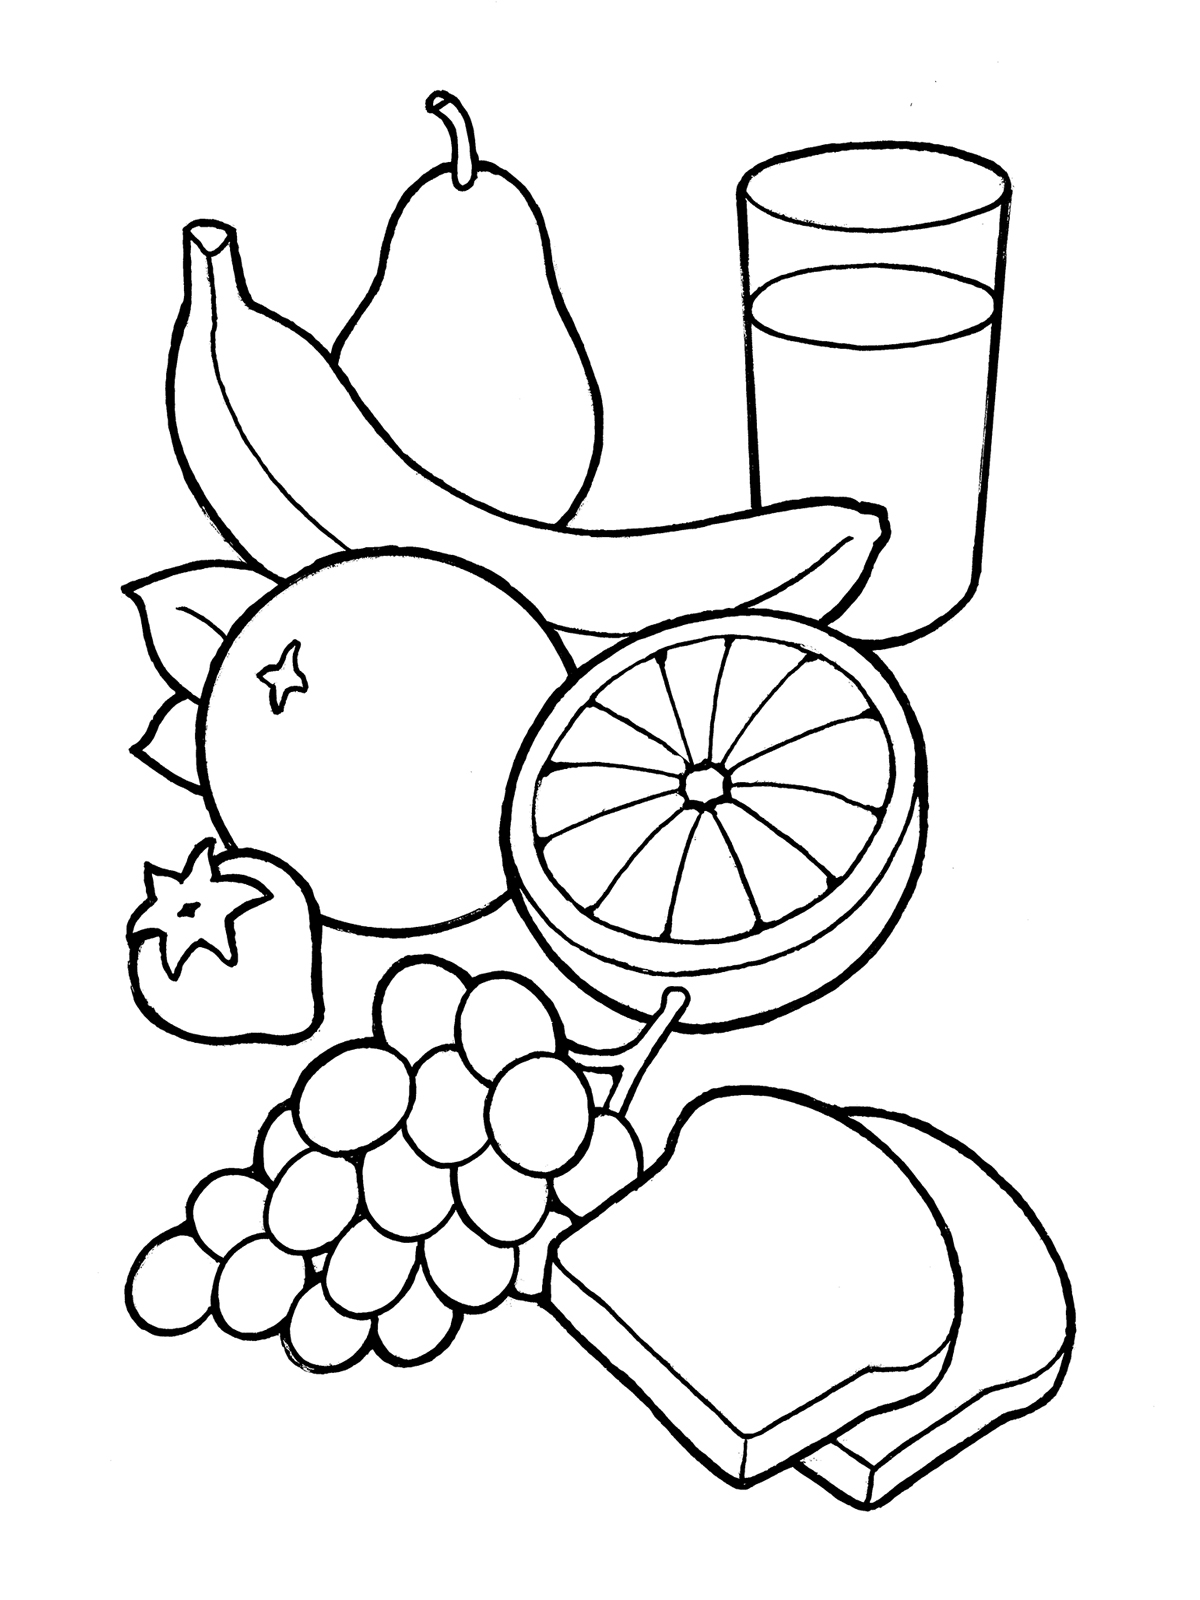 Free White Food Cliparts, Download Free Clip Art, Free Clip Art on.